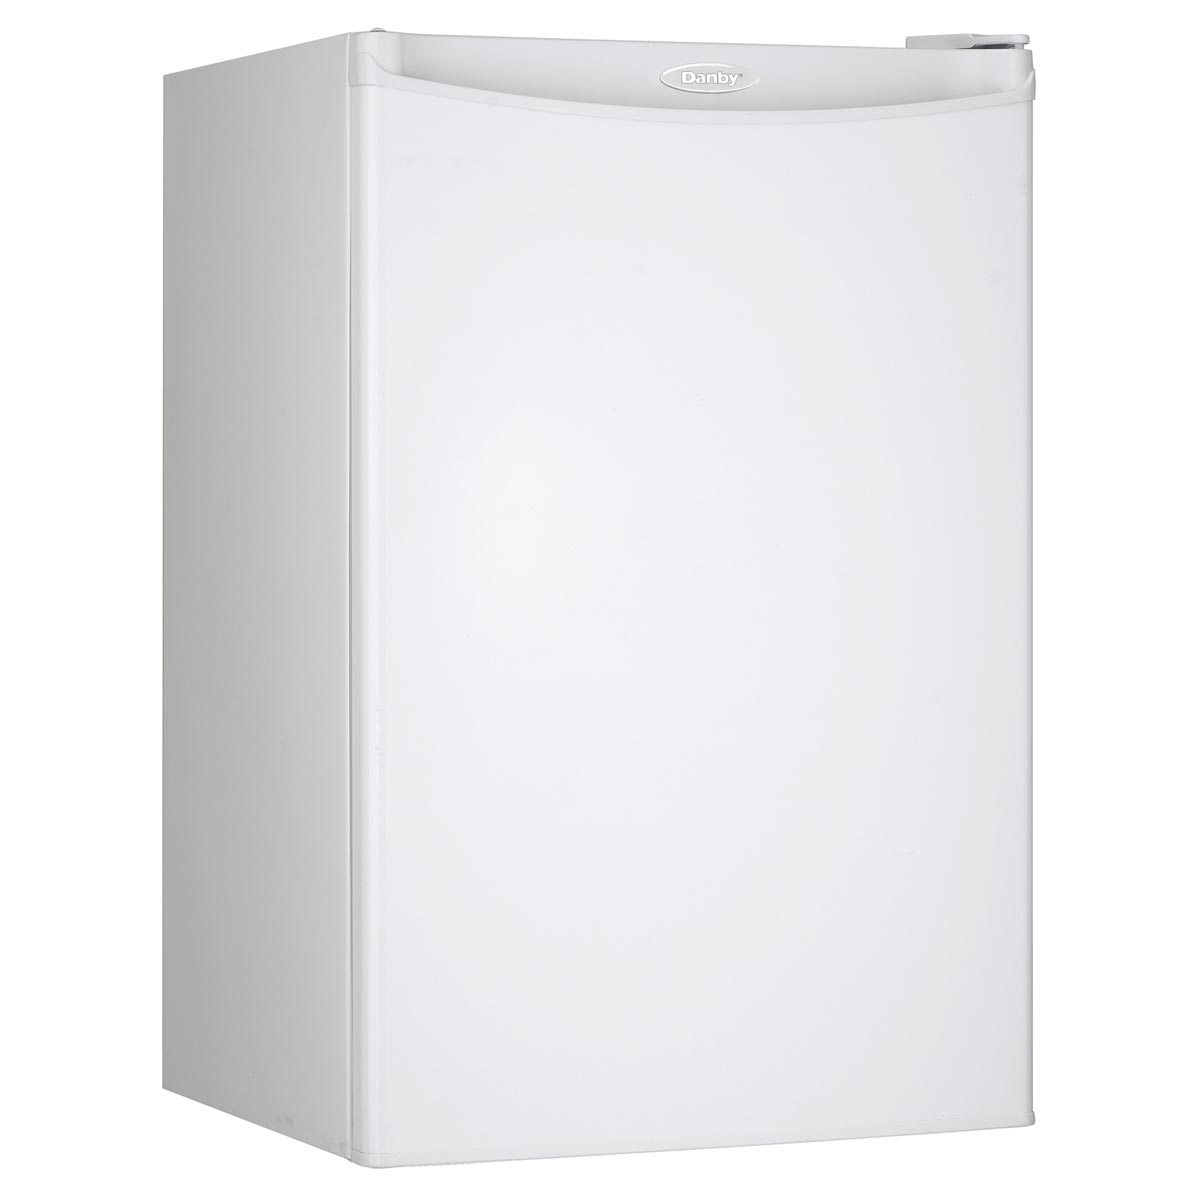 LAST ONE! 3.2 cu. ft. Manual Defrost Upright Freezer in White